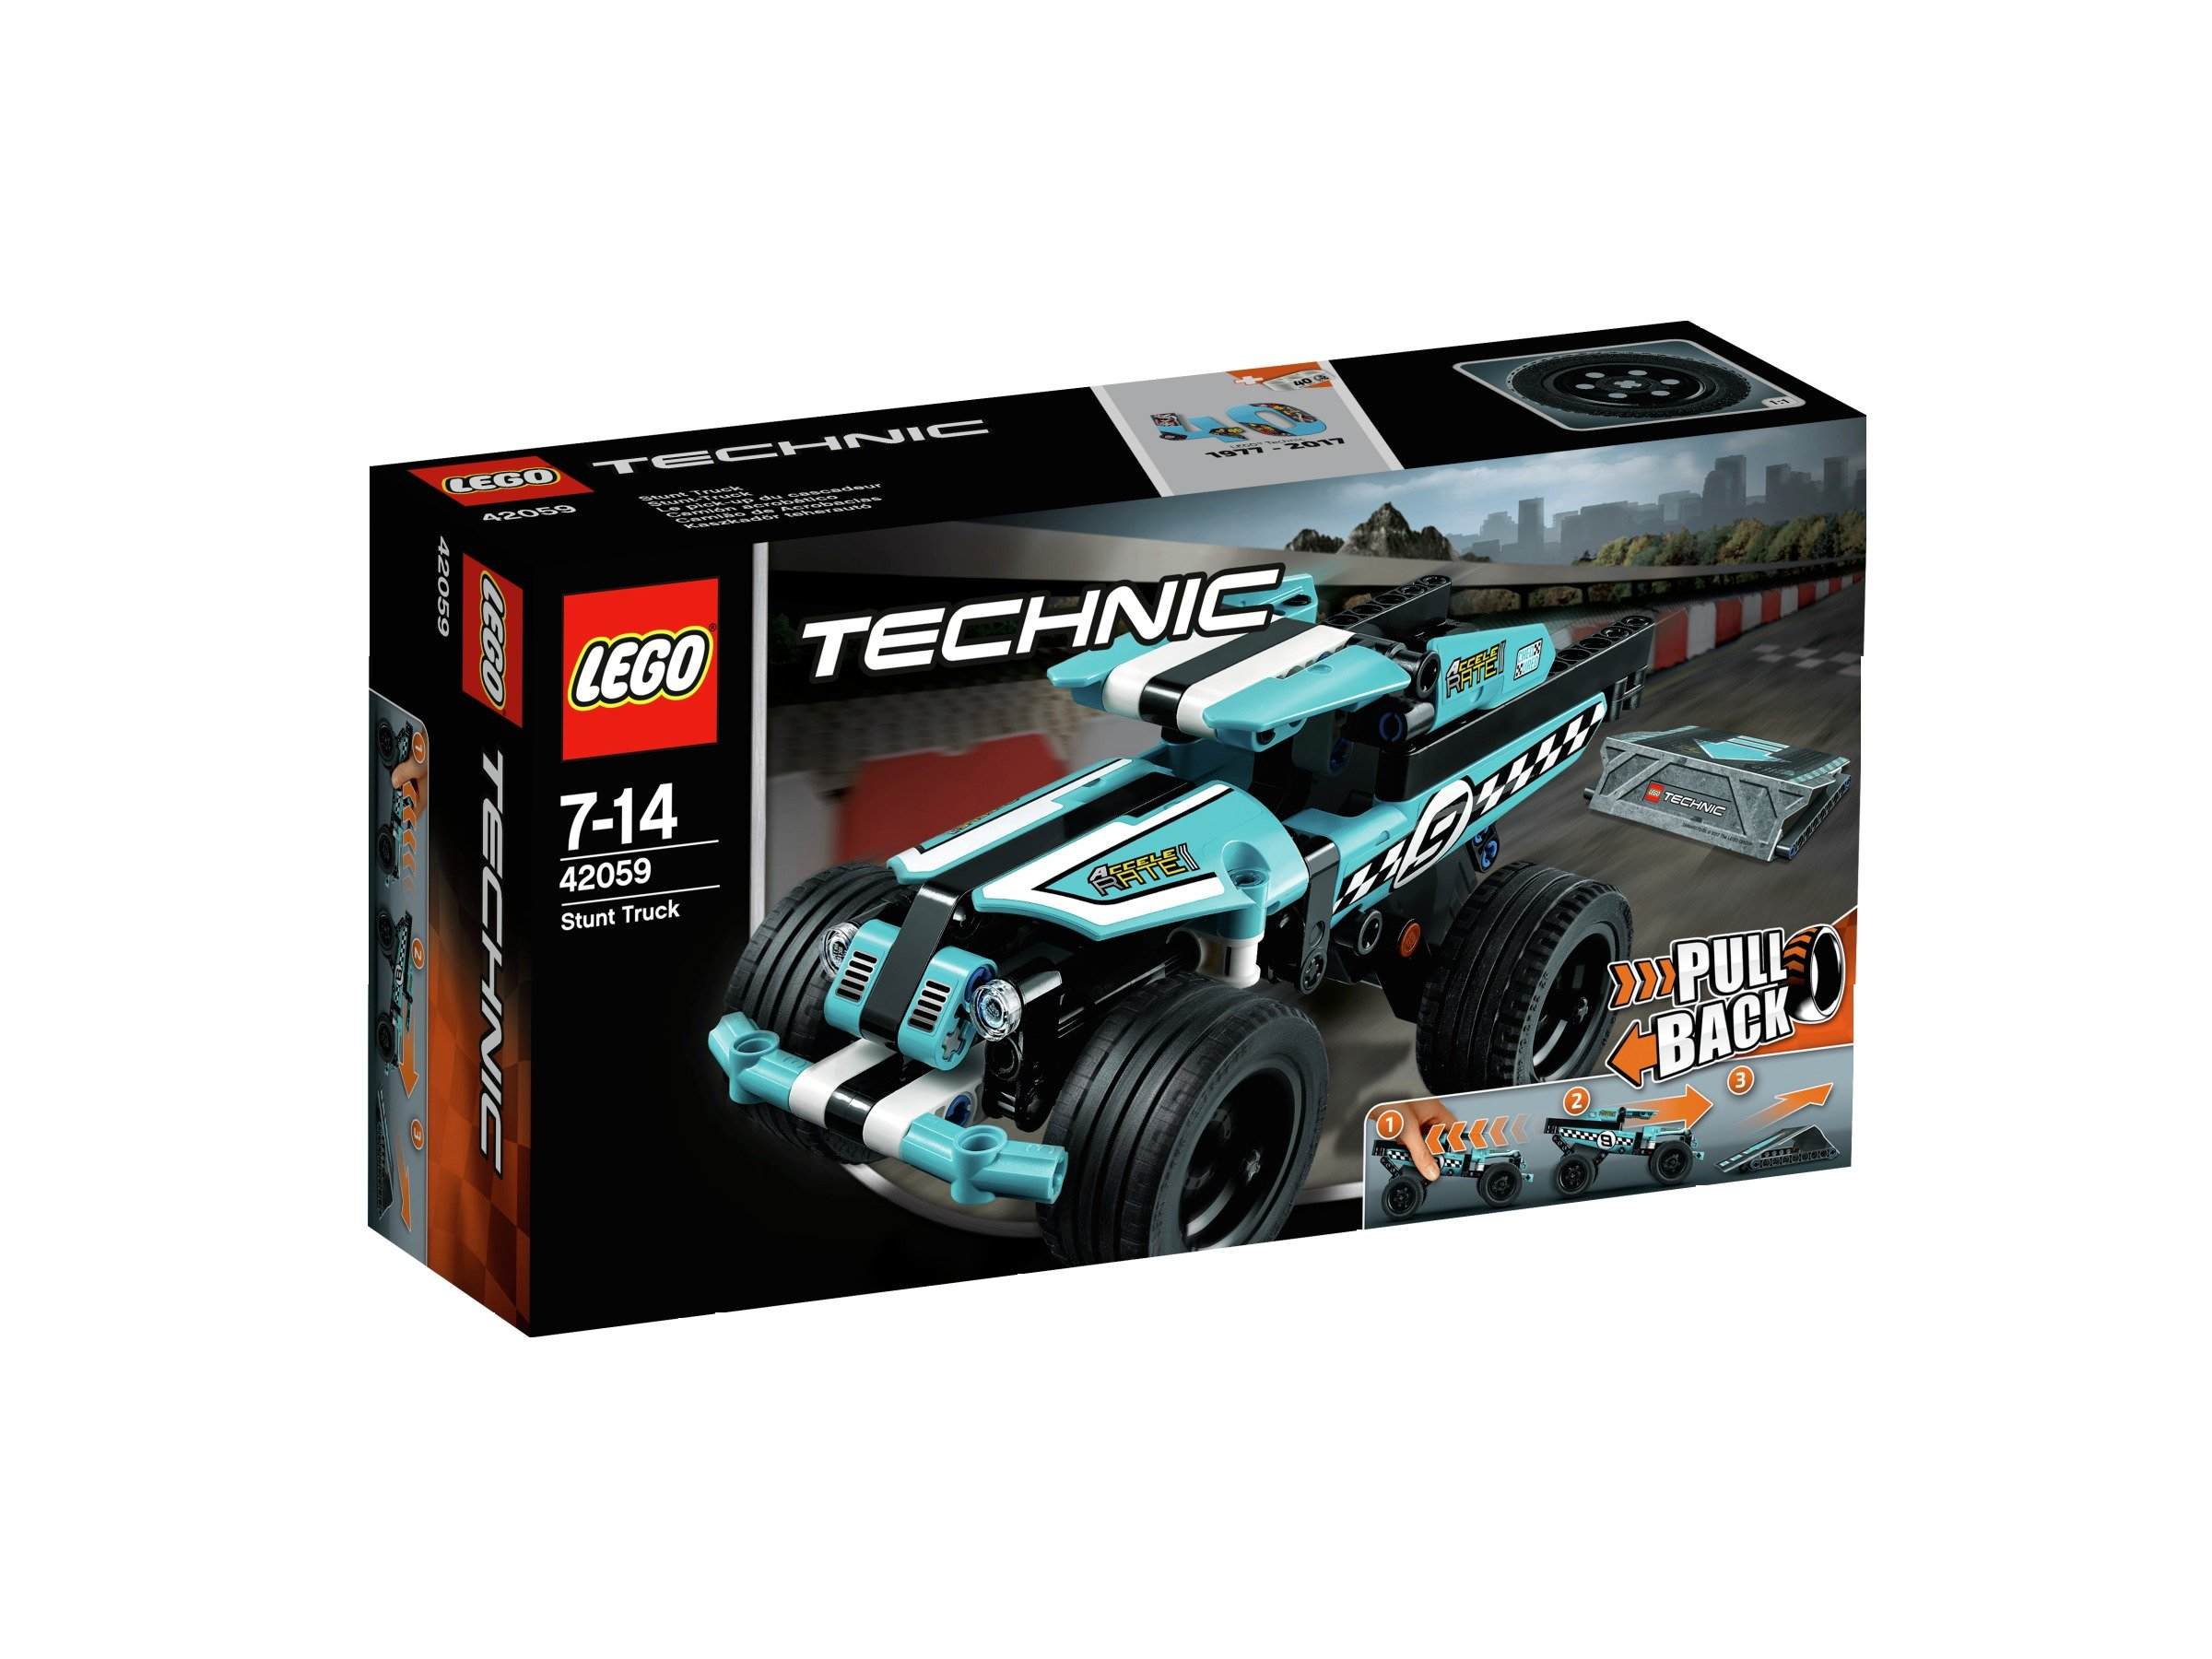 Image of LEGO Technic Stunt Truck -42059.